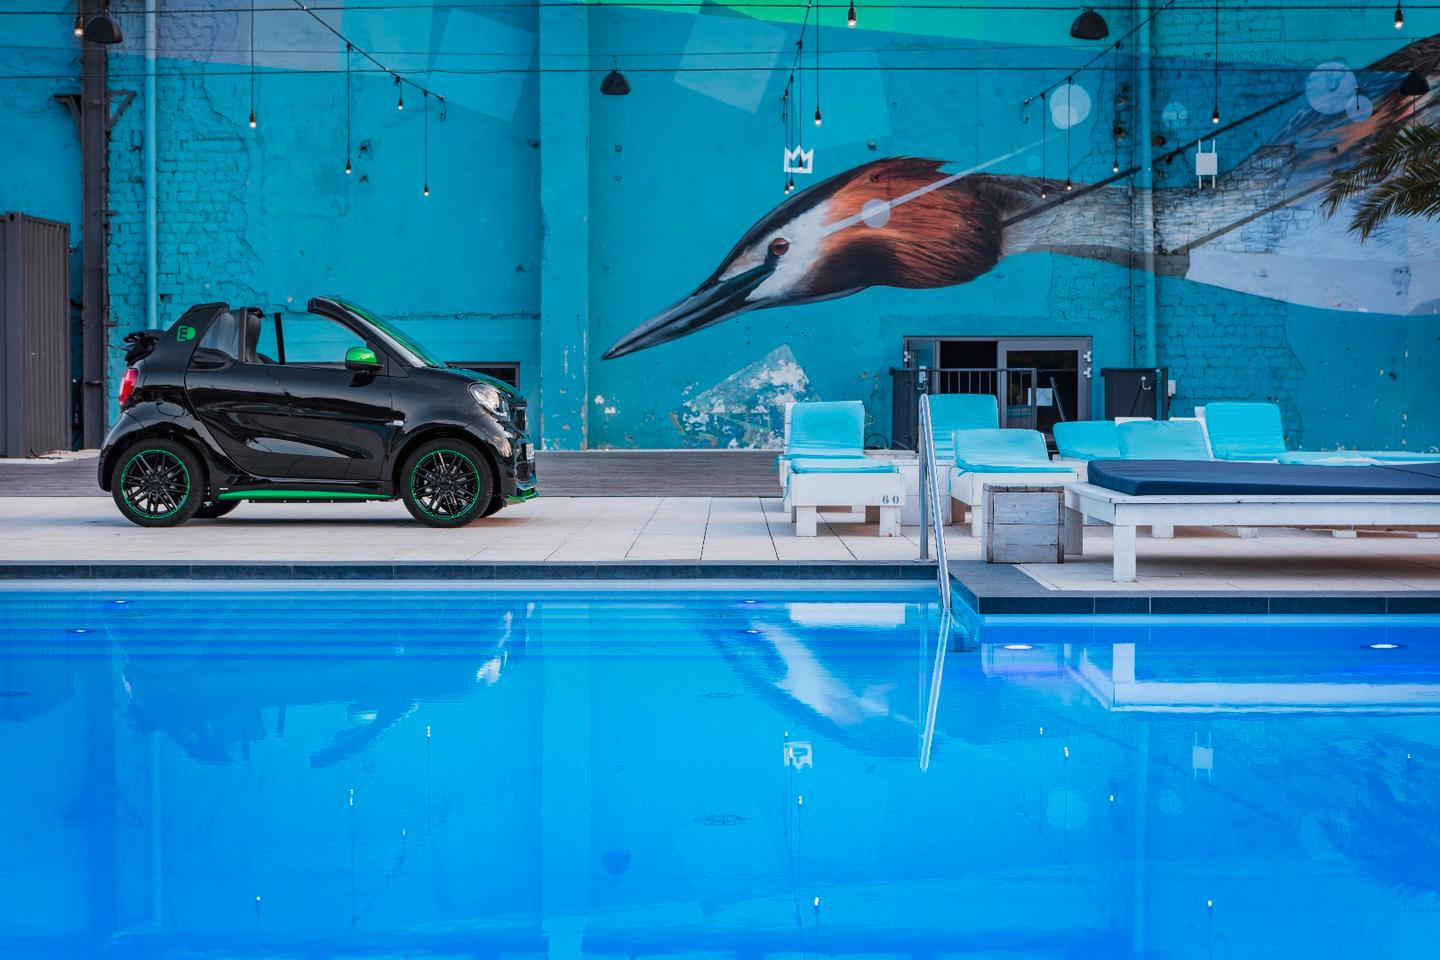 An electric car next to a pool is probably not such a Smart idea